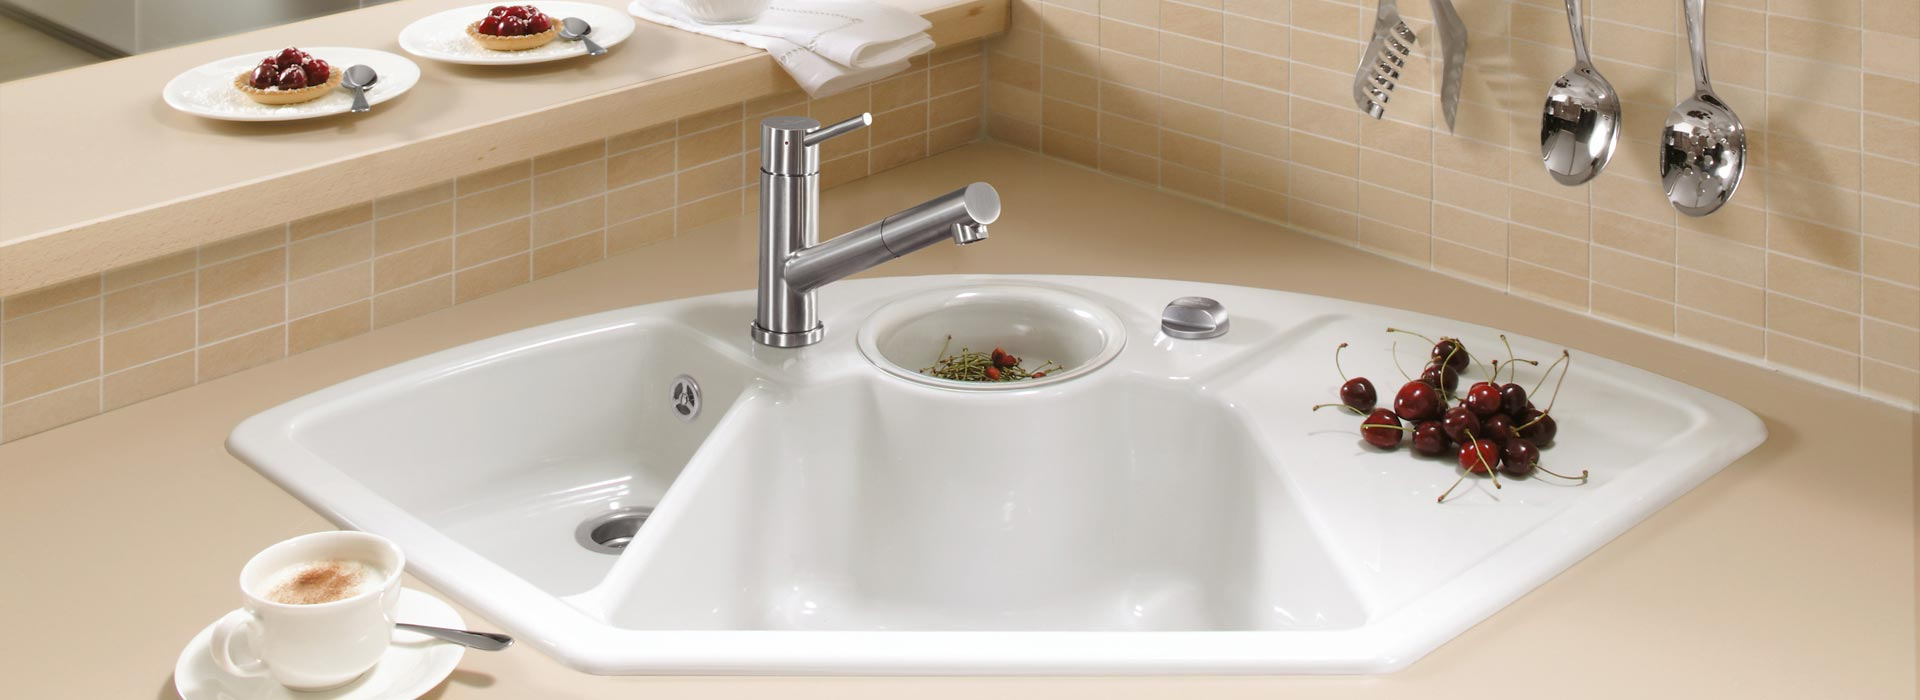 Evier Cuisine Villeroy Et Boch #7: Éviers Du0027angle Solo Angle, Robinetterie Cosmo Shower